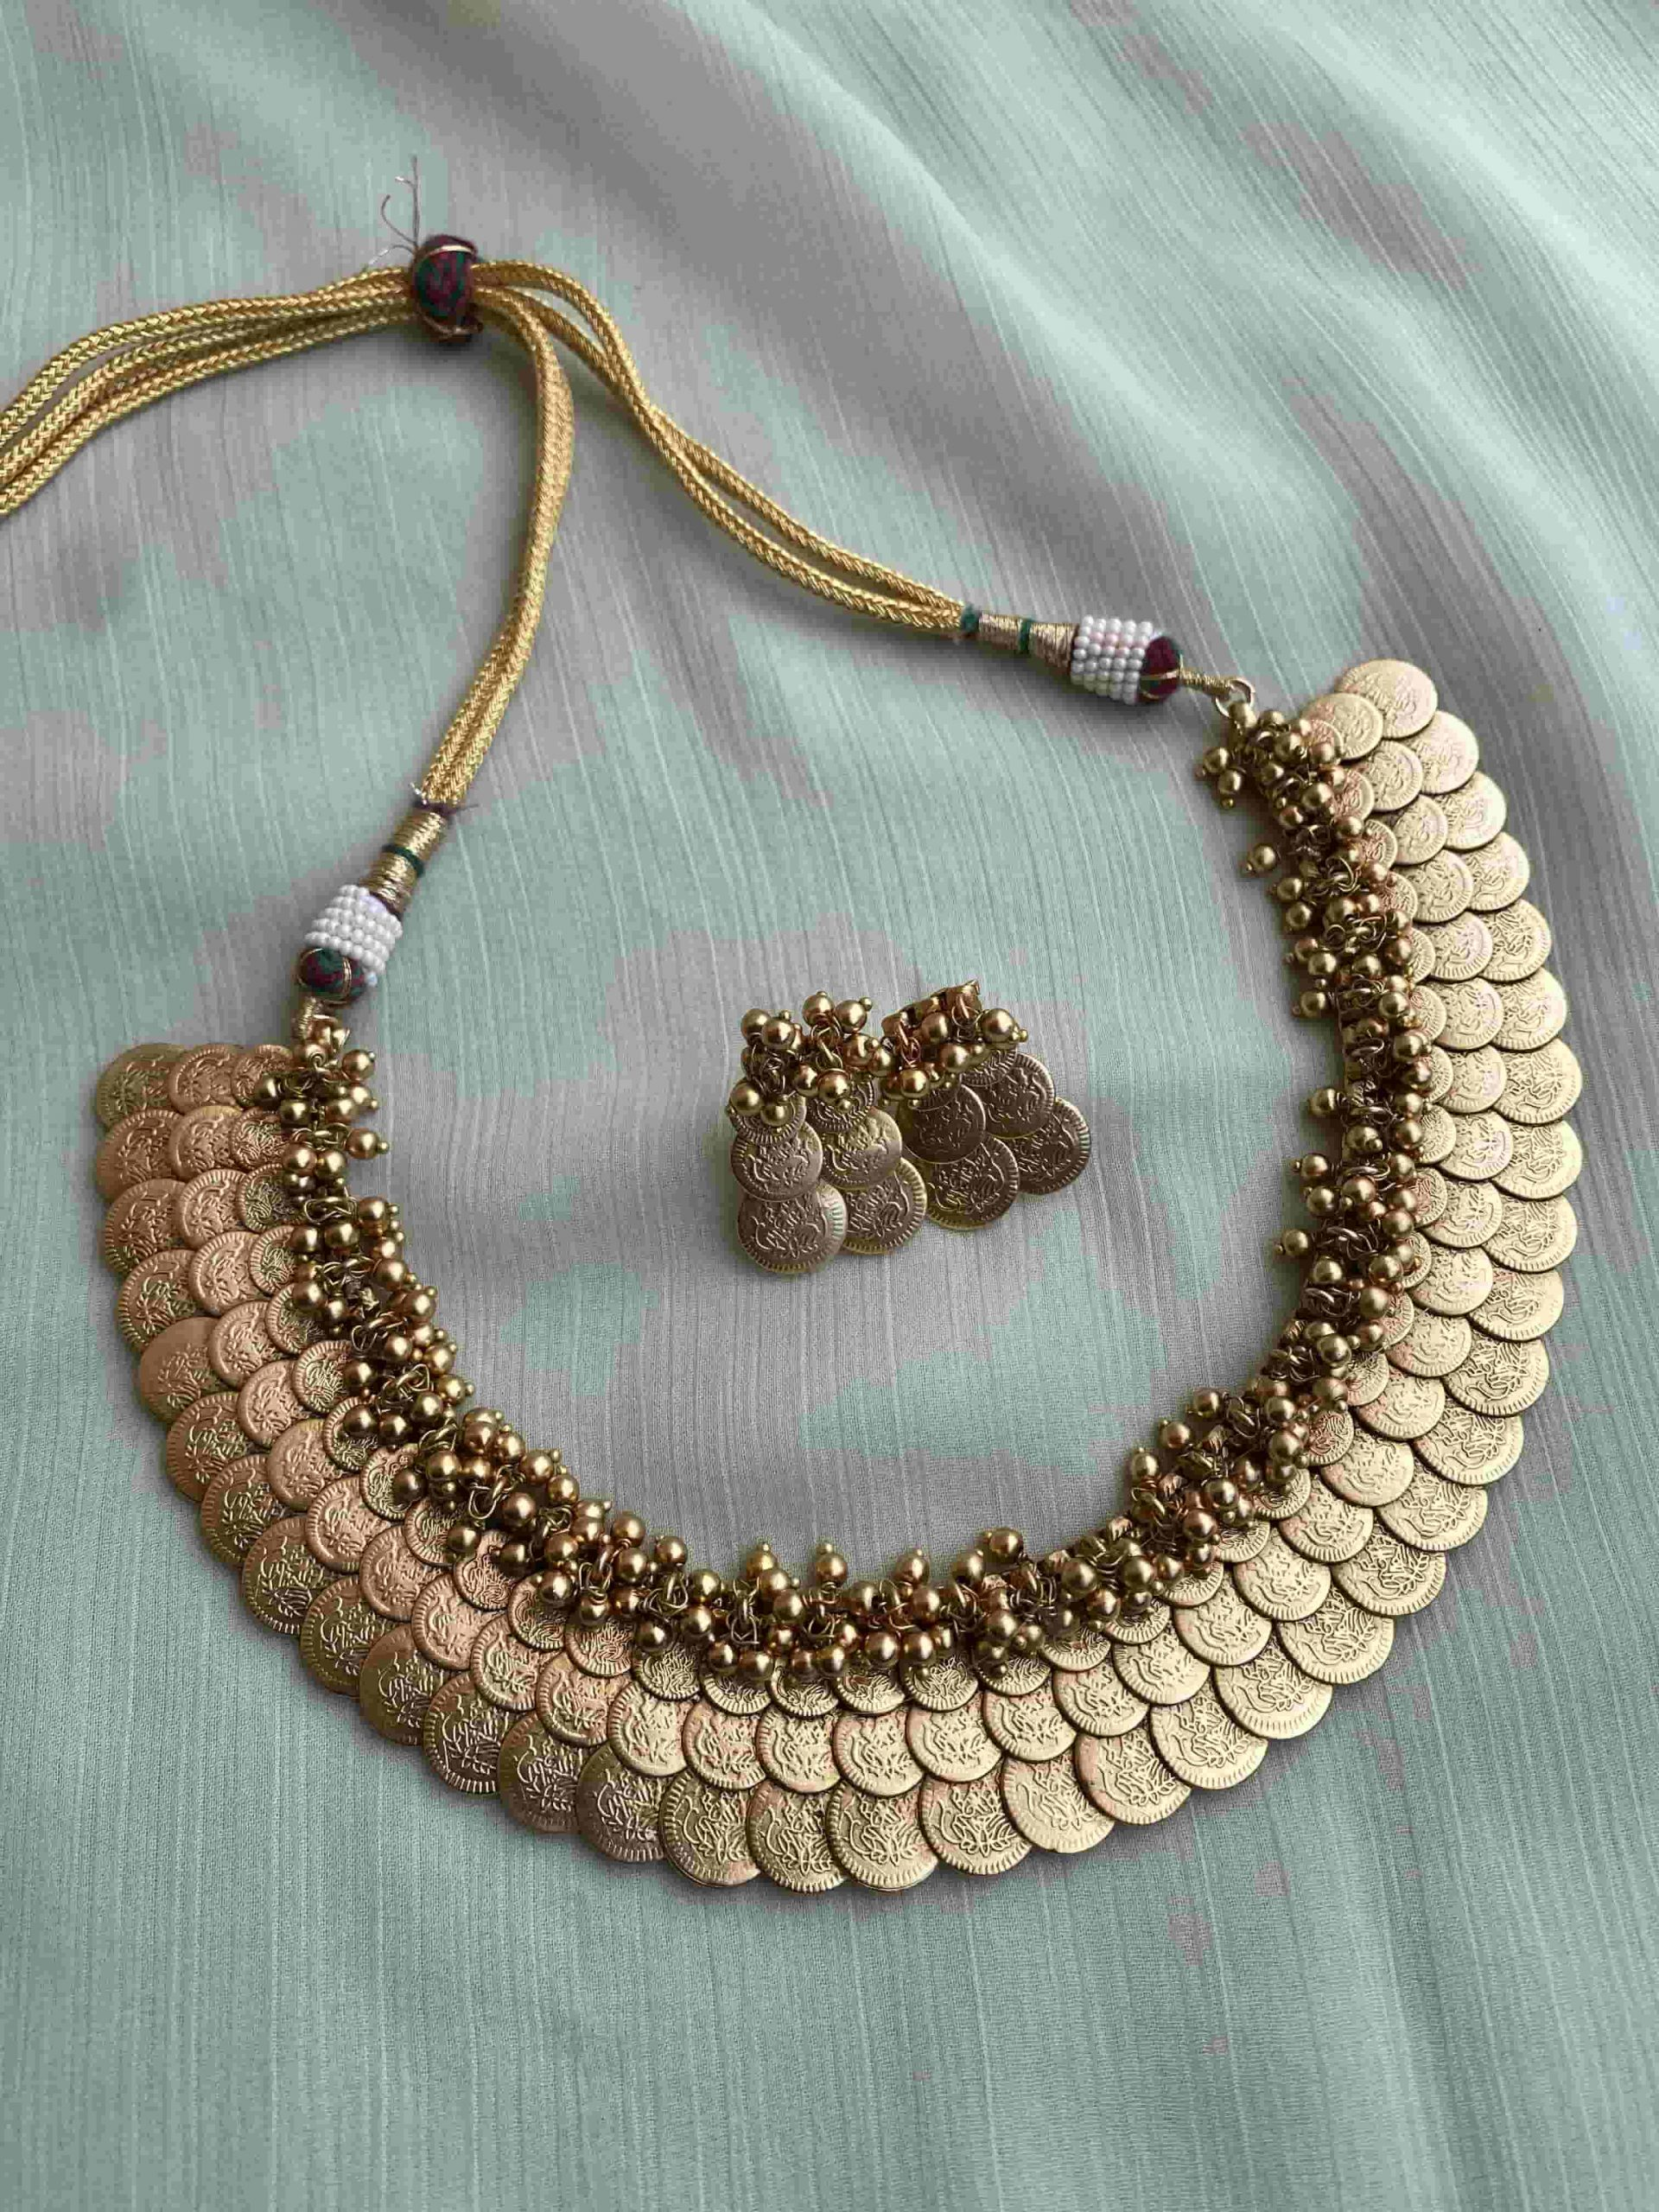 Gorgeous-Traditional-Lakshmi-Coin-Necklace-01-2-scaled